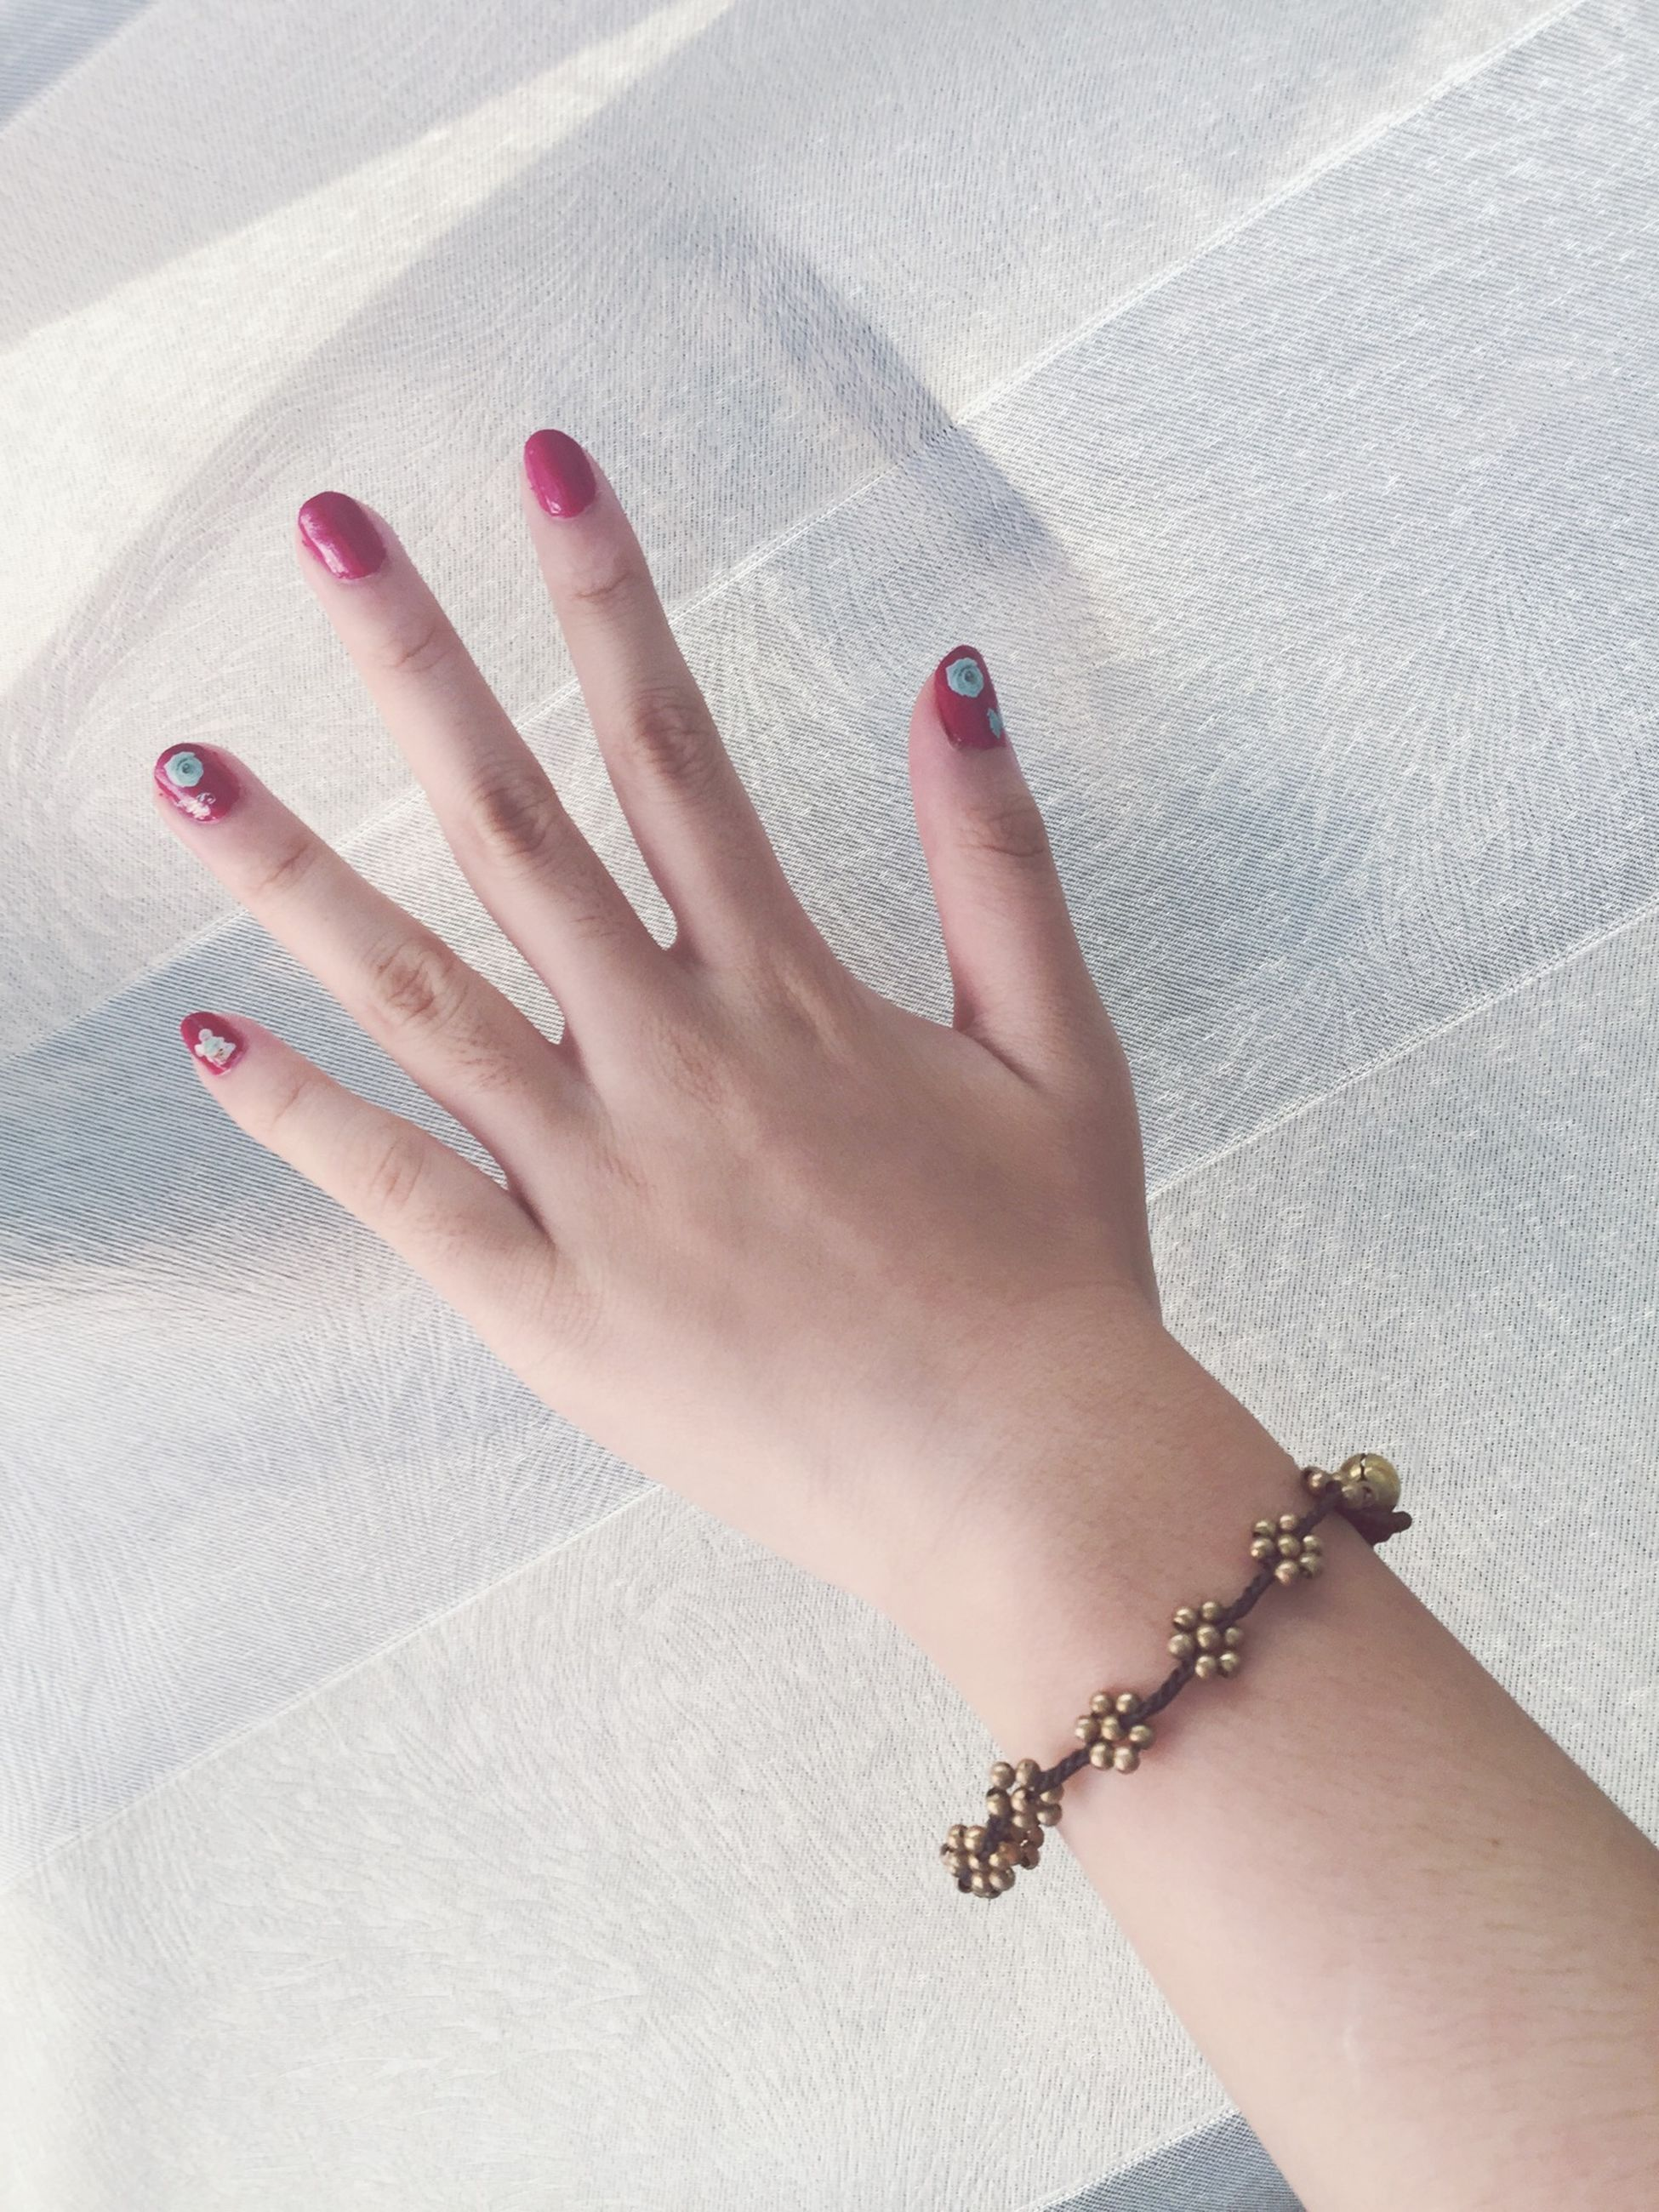 person, part of, human finger, personal perspective, cropped, lifestyles, indoors, leisure activity, holding, unrecognizable person, wall - building feature, touching, close-up, nail polish, high angle view